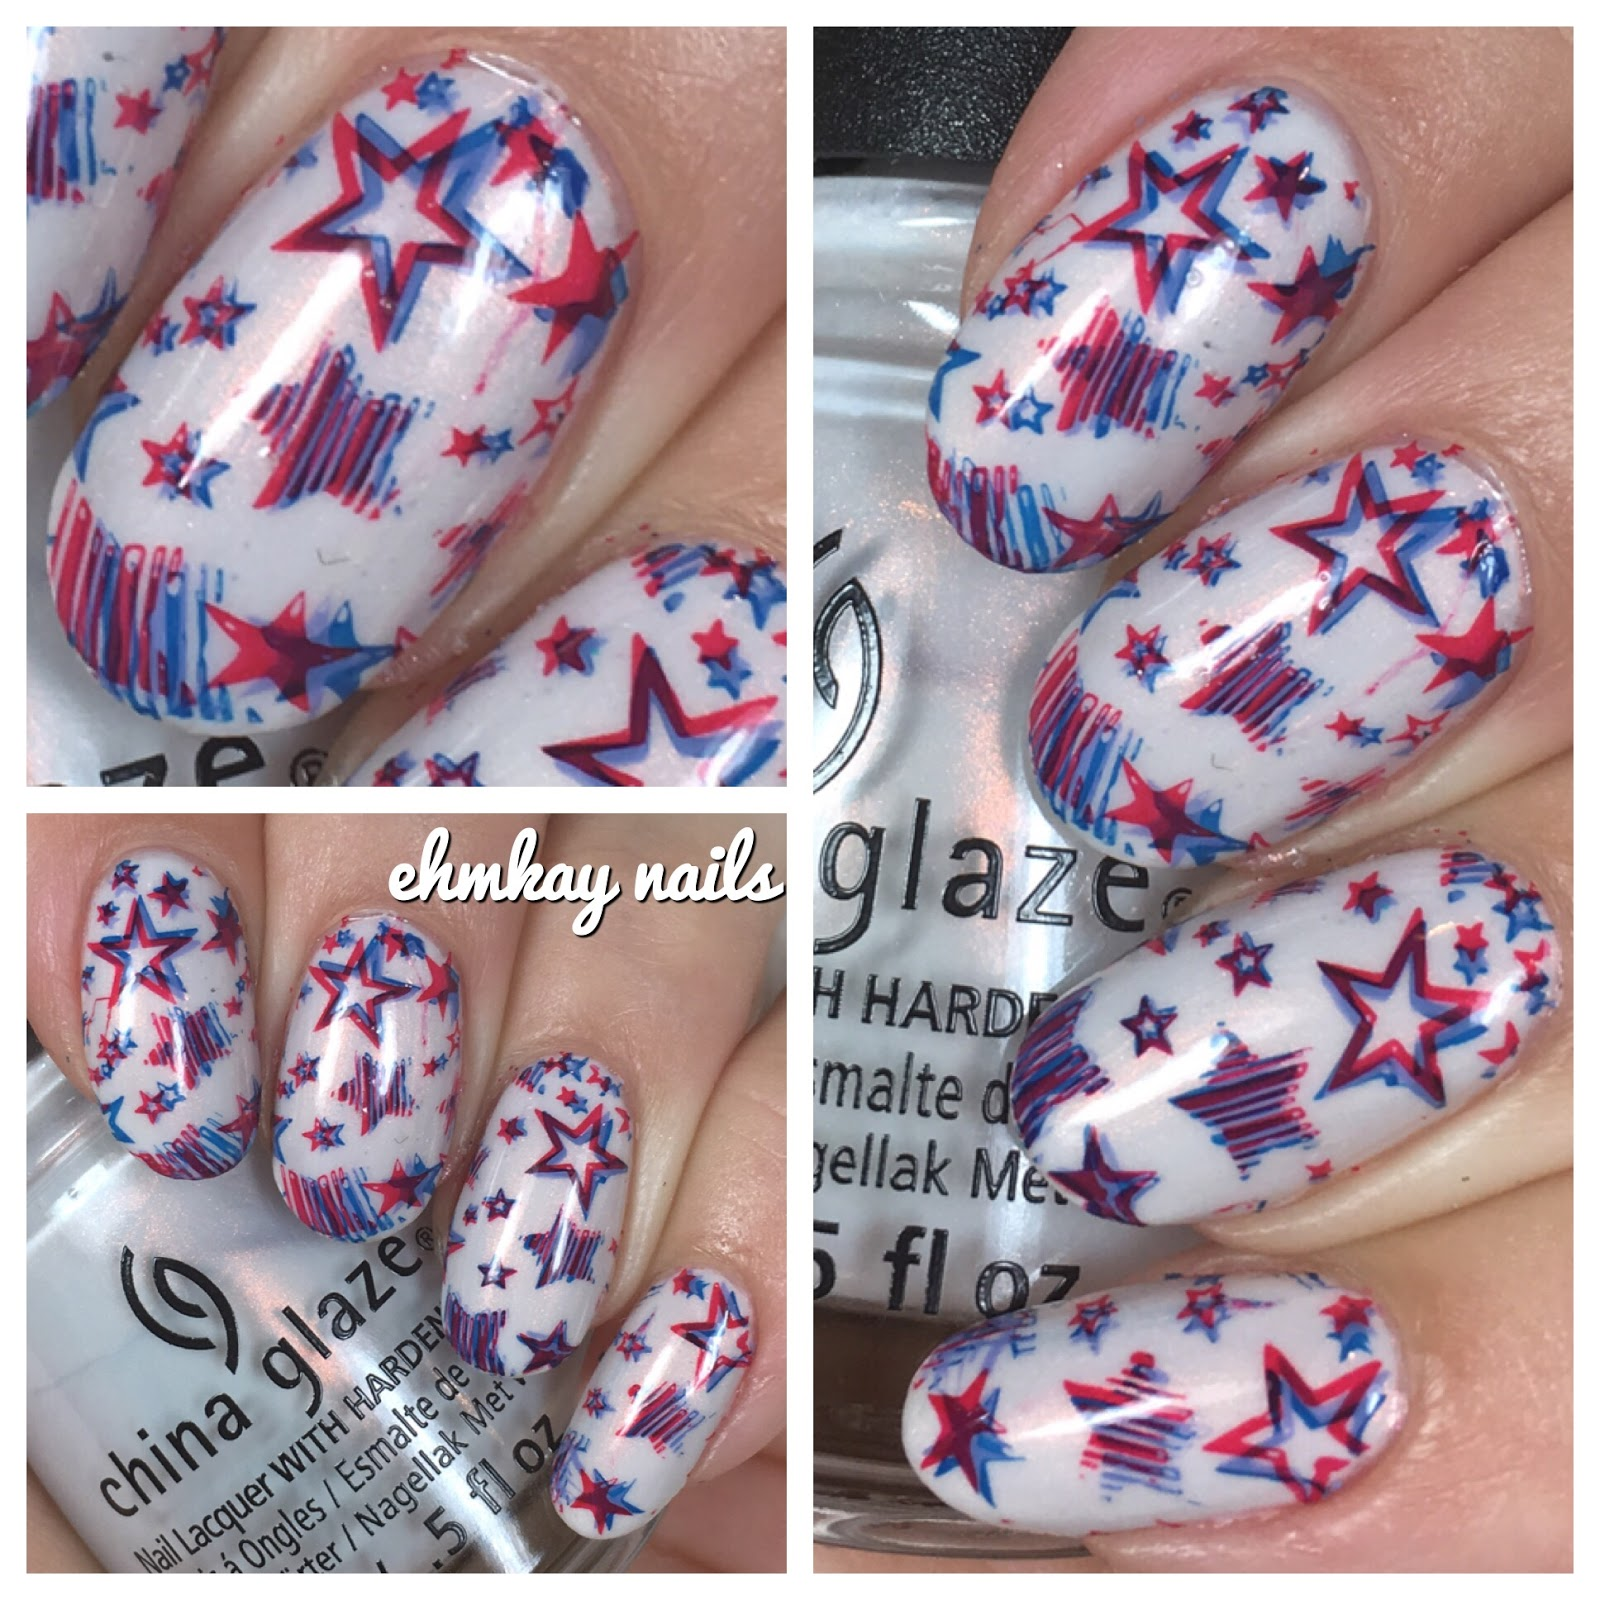 ehmkay nails: Fourth of July Nail Art: 3D Stamped Stars